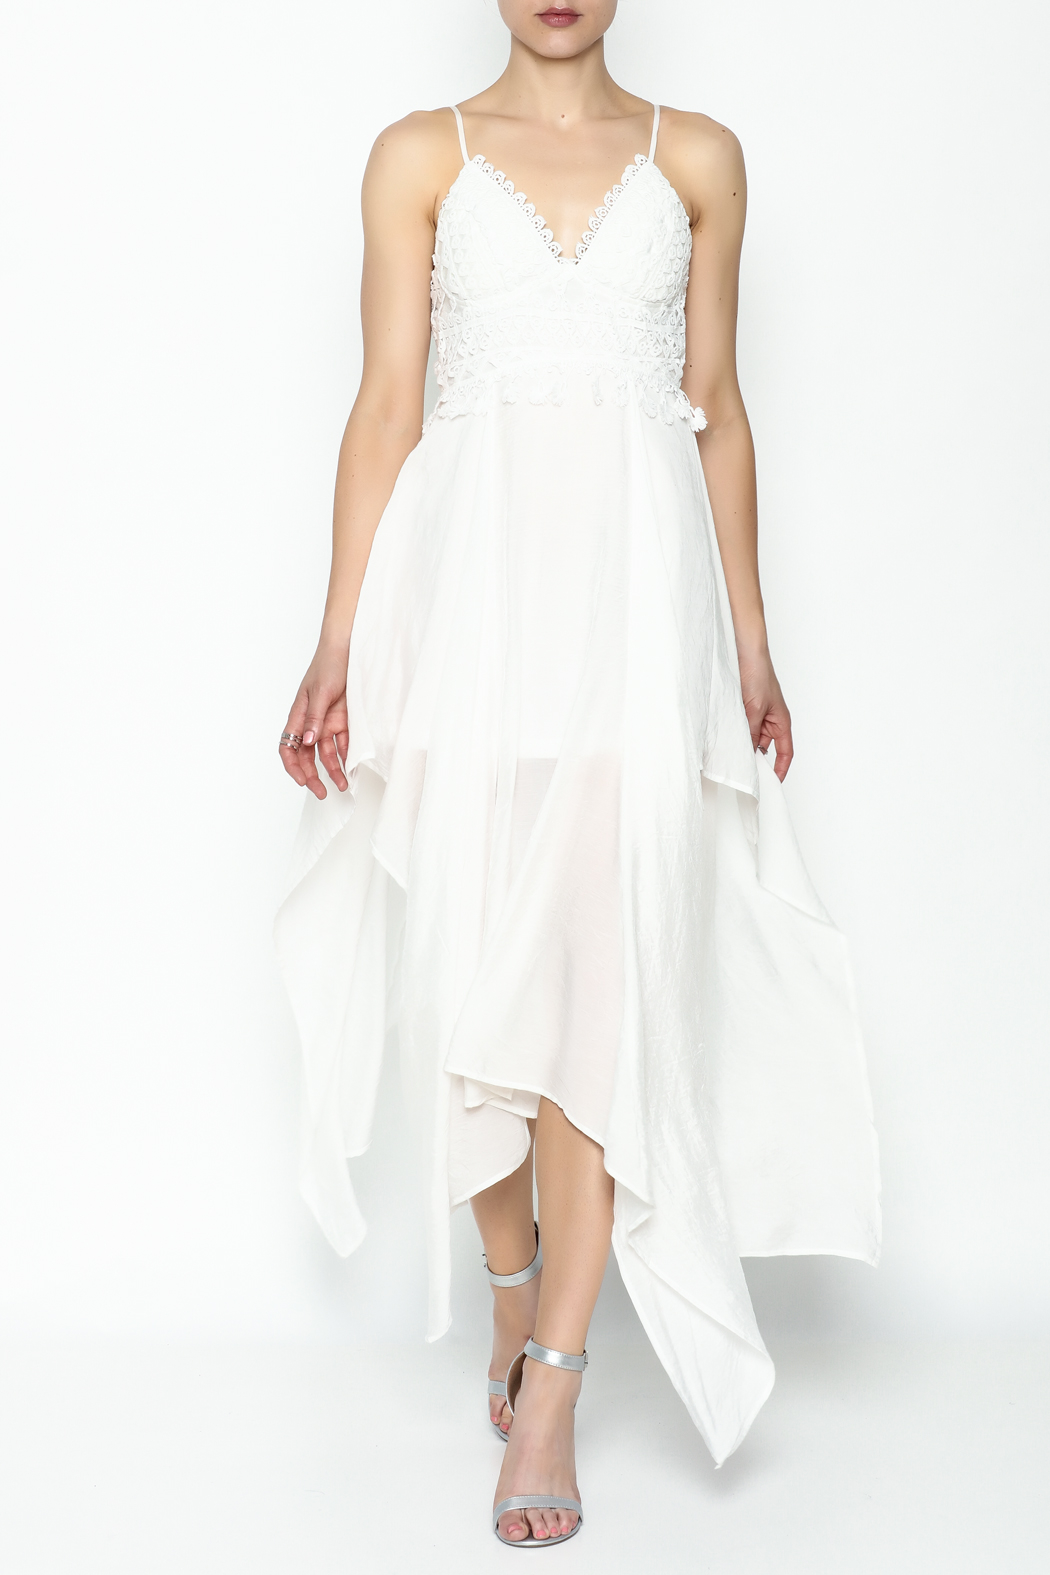 luxxel White Maxi Dress - Main Image